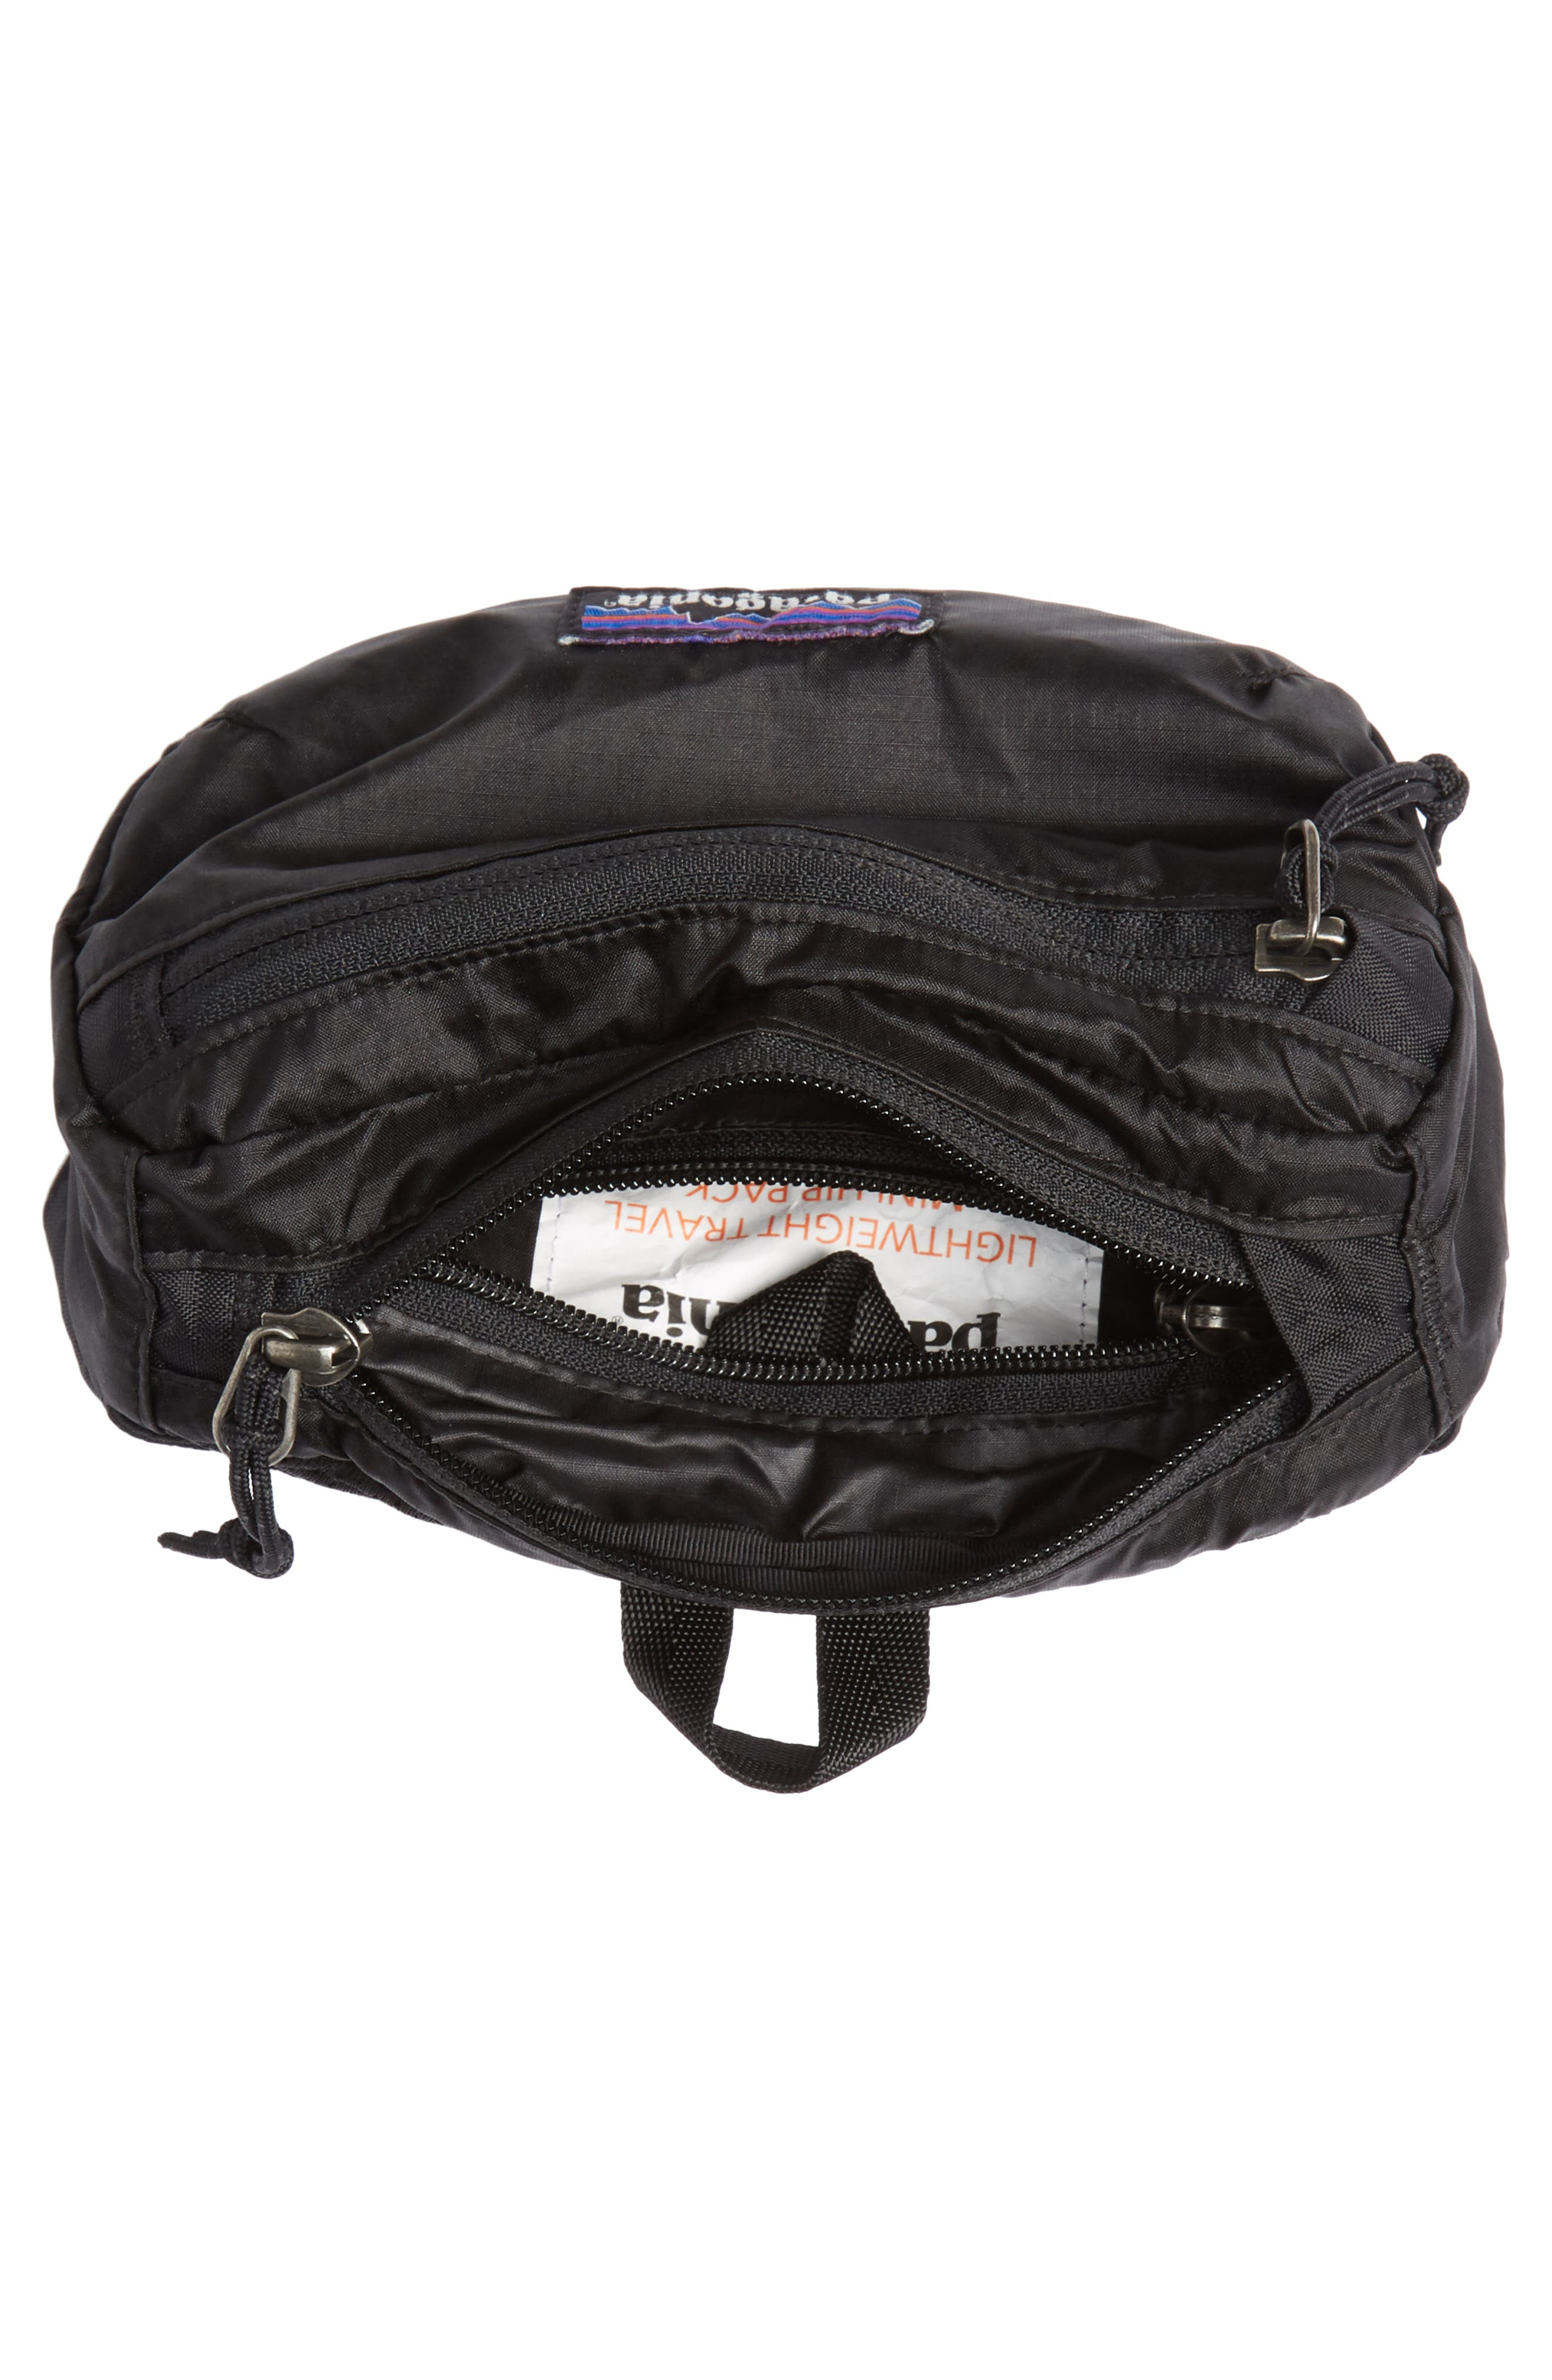 PATAGONIA, Lightweight Mini Hip Pack, Alternate thumbnail 6, color, BLACK